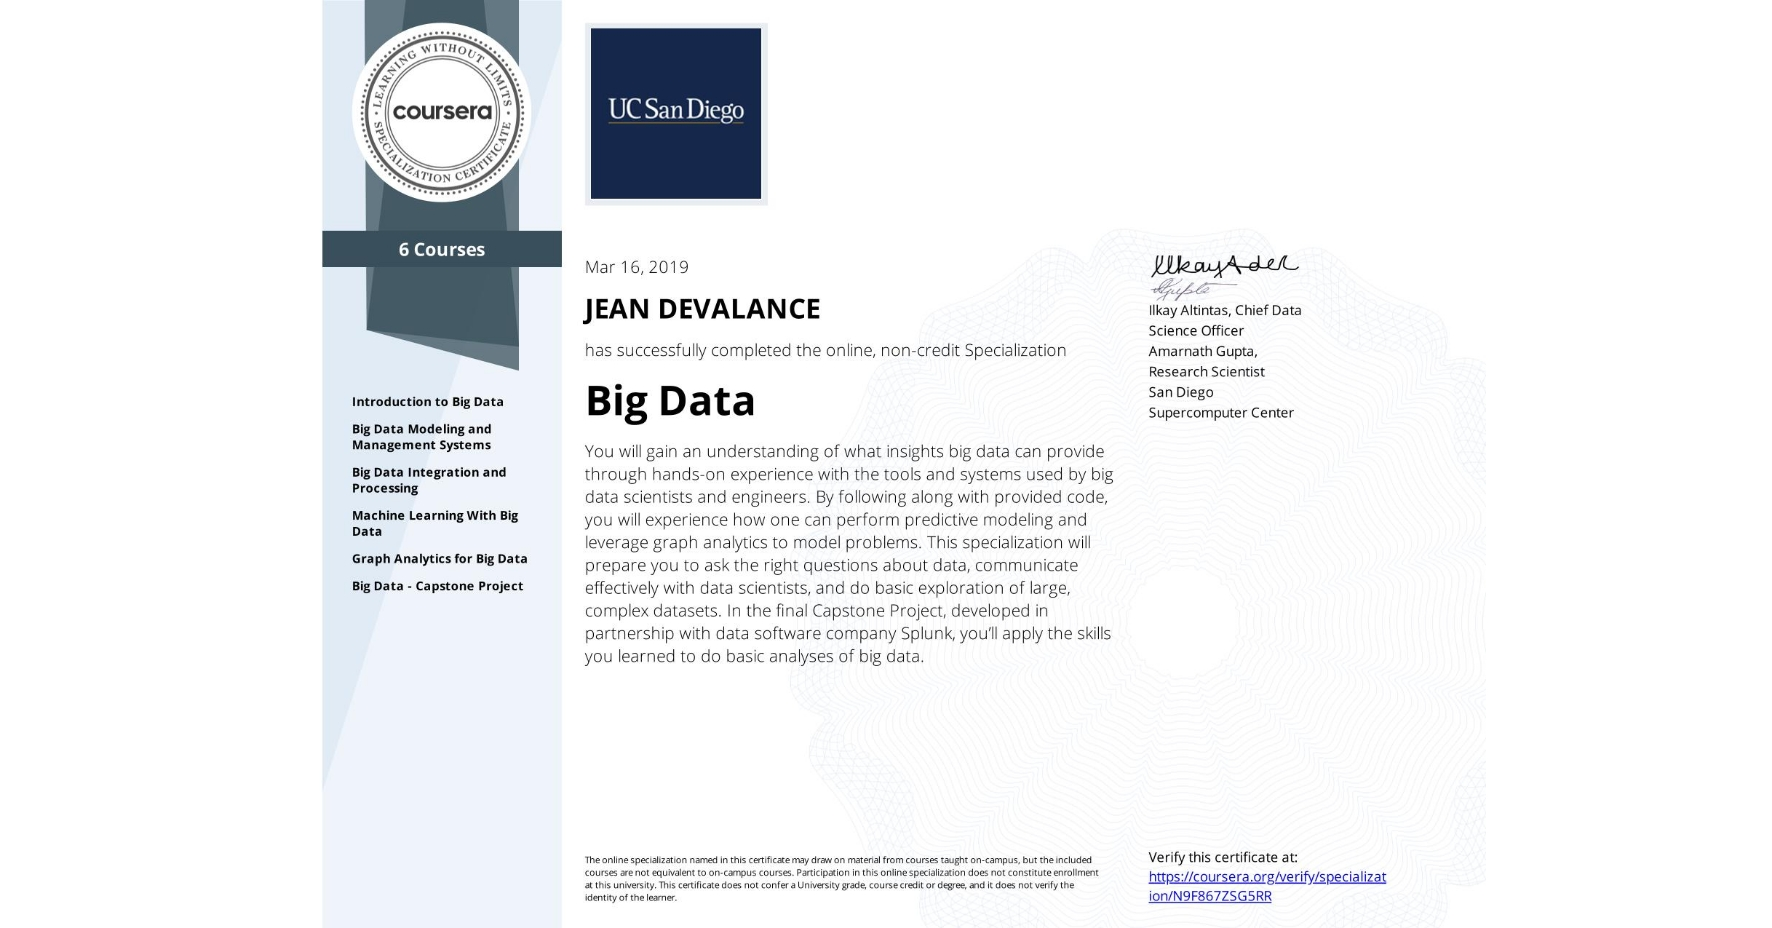 View certificate for JEAN DEVALANCE, Big Data, offered through Coursera. You will gain an understanding of what insights big data can provide through hands-on experience with the tools and systems used by big data scientists and engineers.  By following along with provided code, you will experience how one can perform predictive modeling and leverage graph analytics to model problems. This specialization will prepare you to ask the right questions about data, communicate effectively with data scientists, and do basic exploration of large, complex datasets. In the final Capstone Project, developed in partnership with data software company Splunk, you'll apply the skills you learned to do basic analyses of big data.